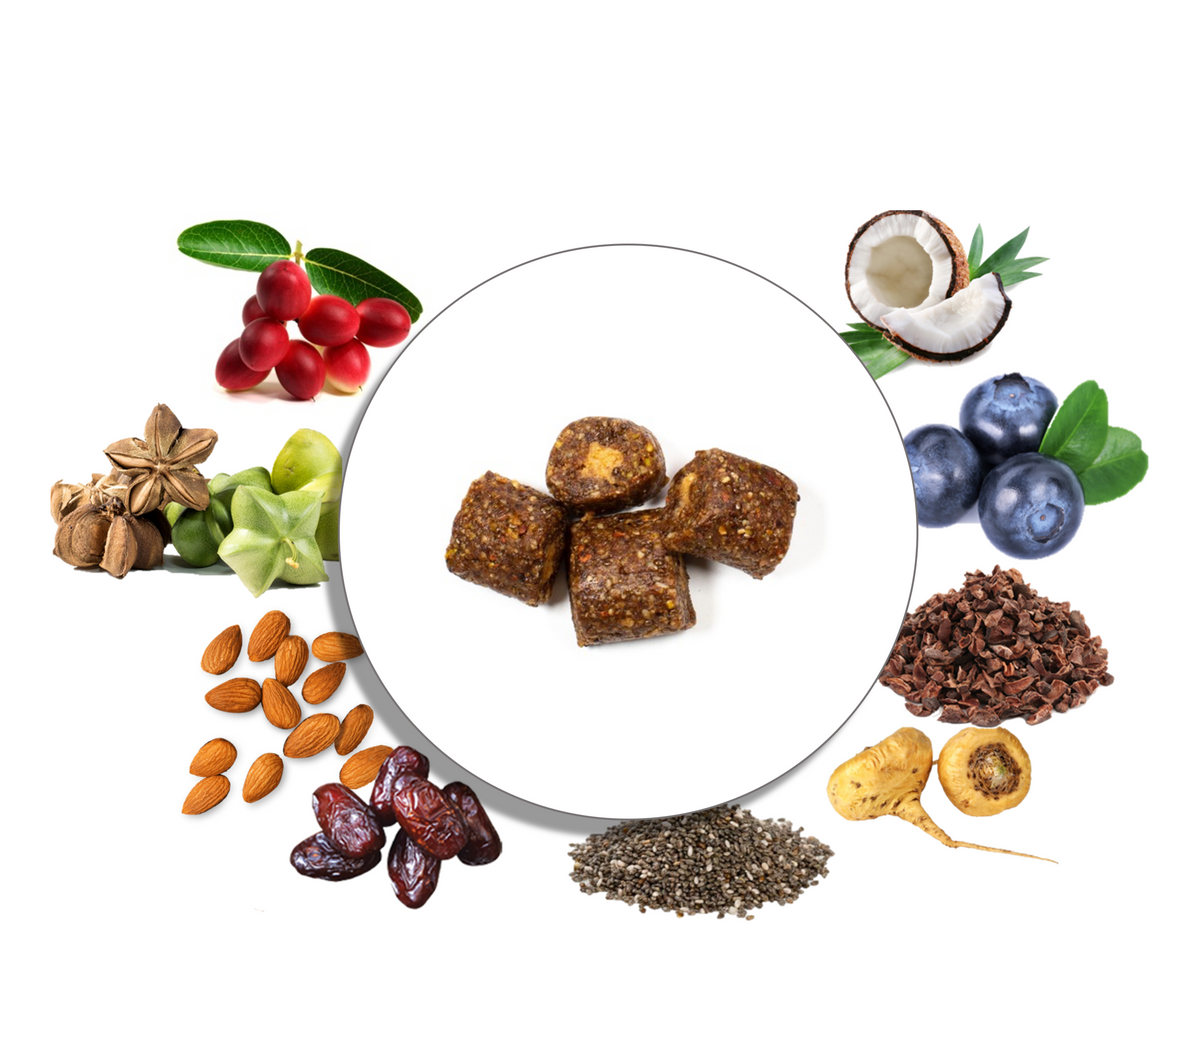 Powerful superfoods like goji berries, chia, maca, turmeric, pistachios, sacha inchi, dates, blueberries, and more packed inside each bite.